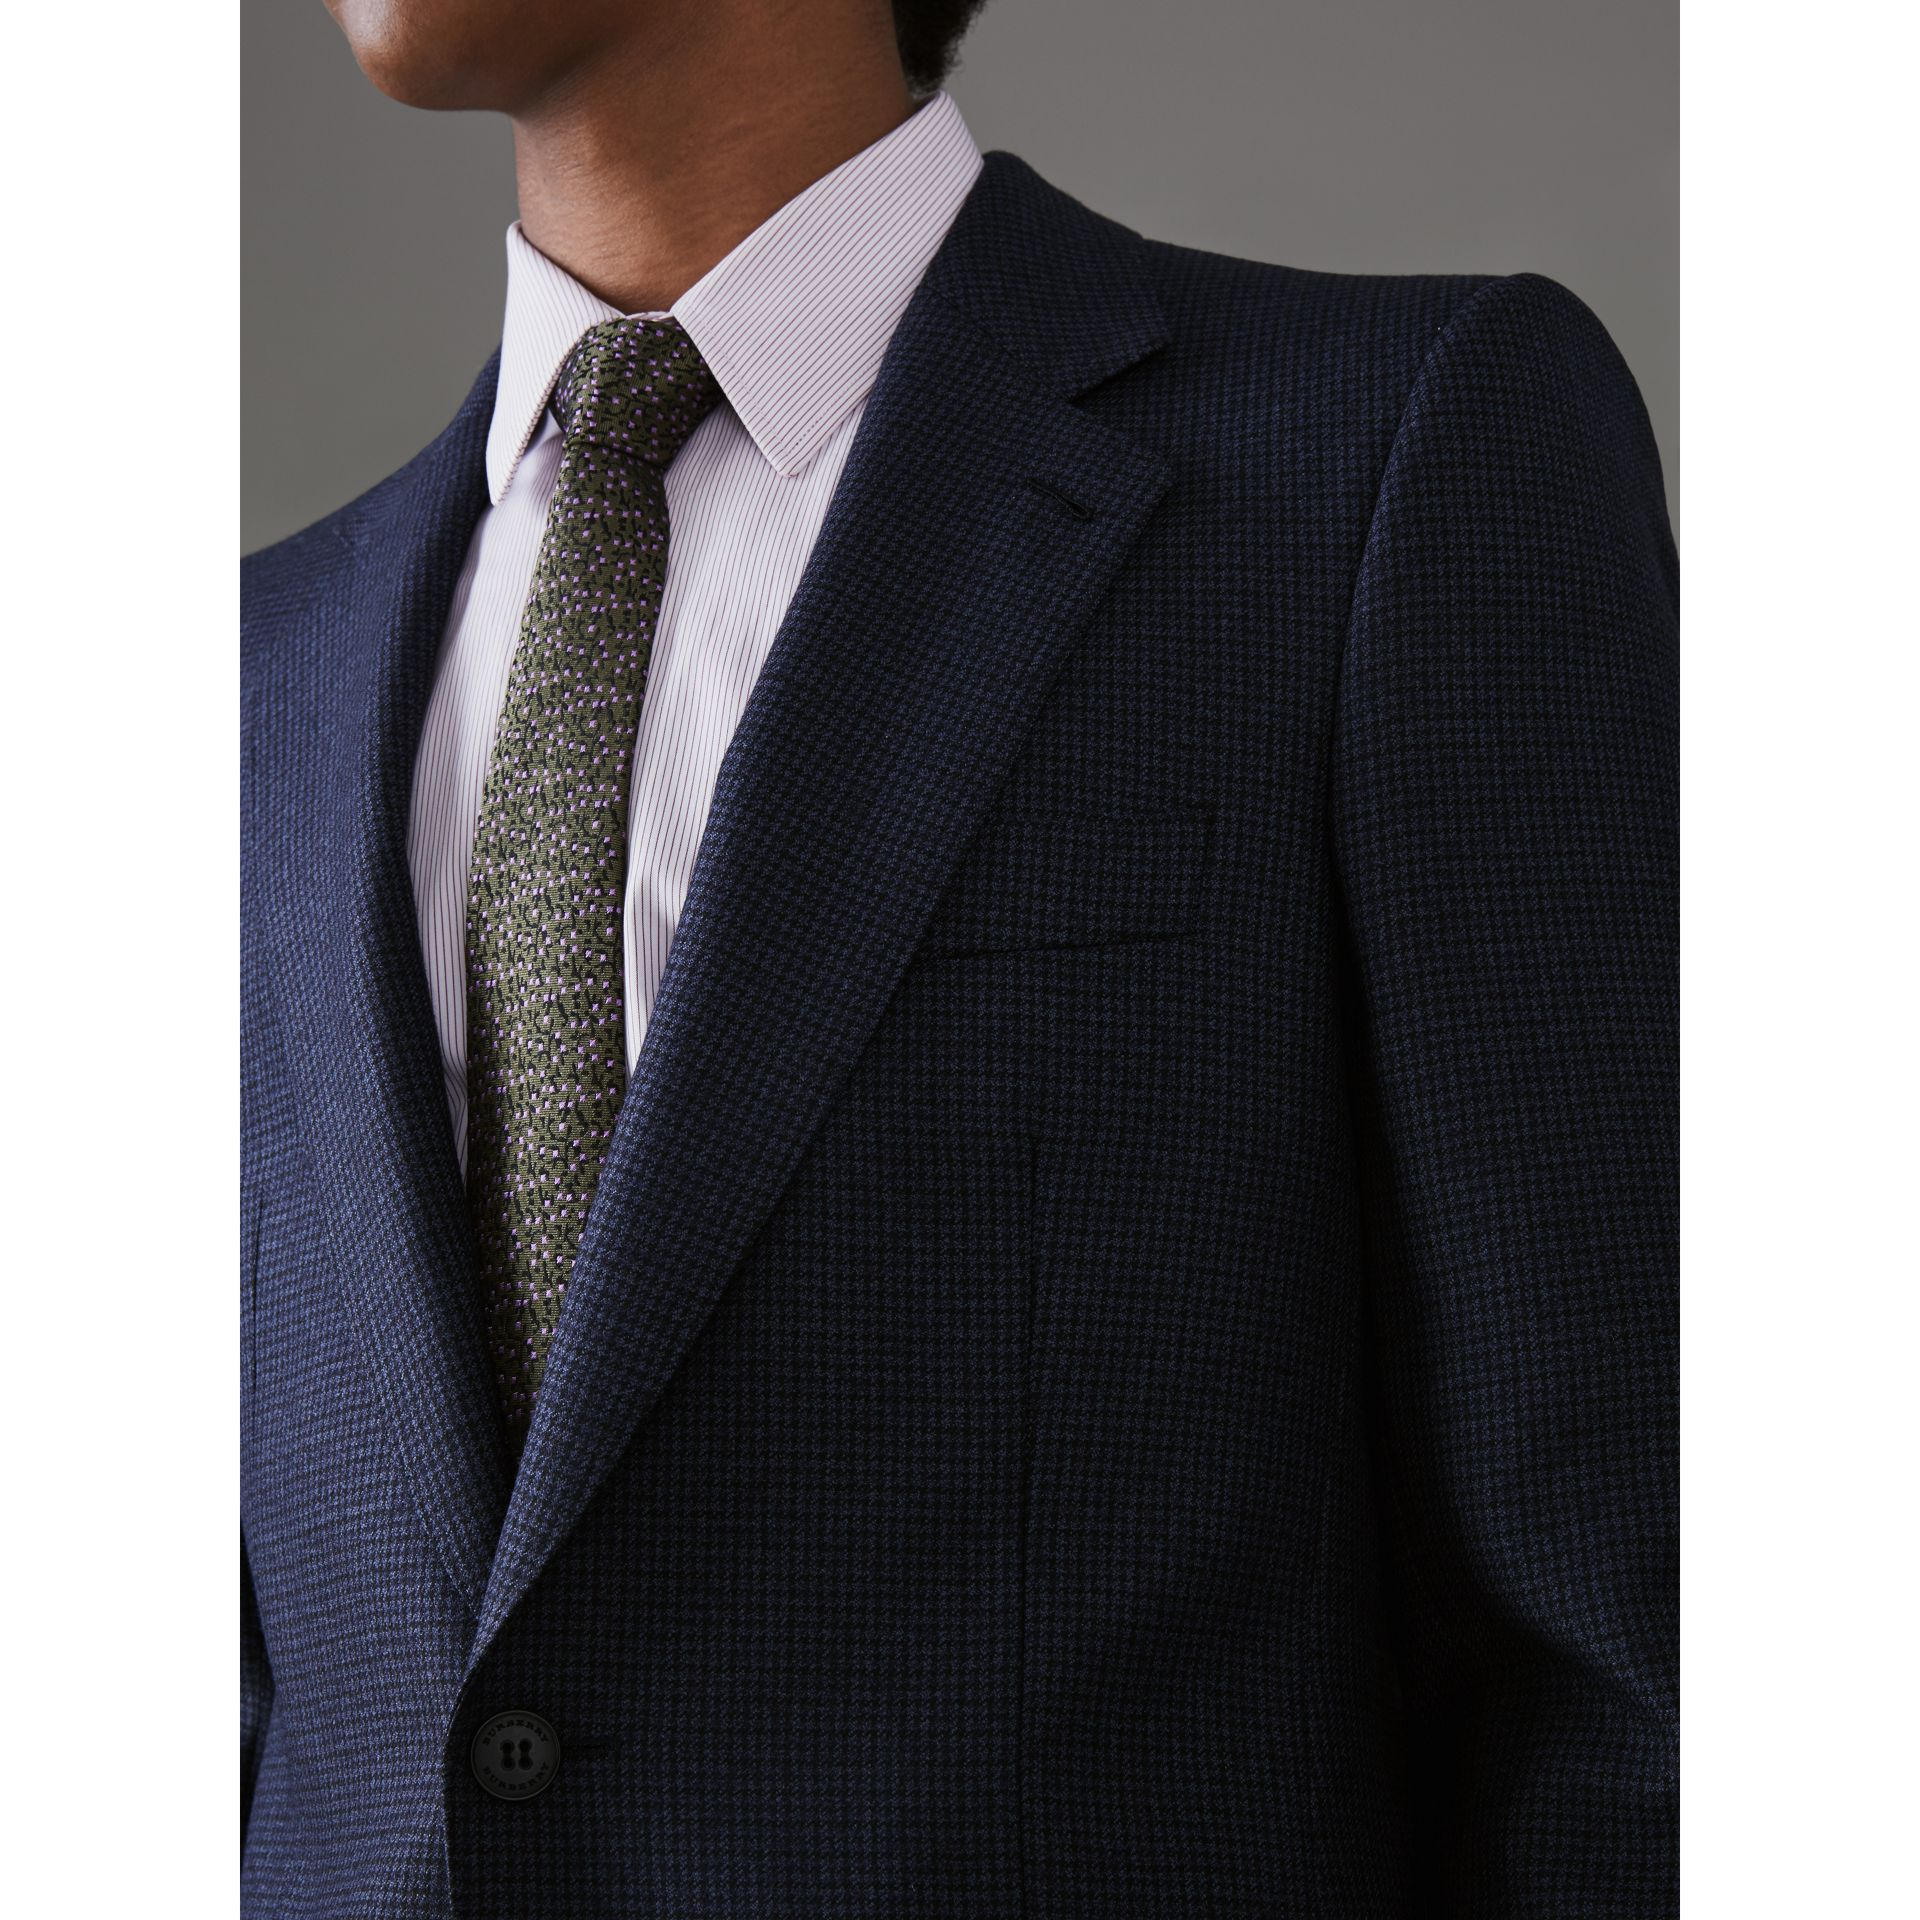 Slim Fit Puppytooth Wool Suit in Navy - Men | Burberry - gallery image 1